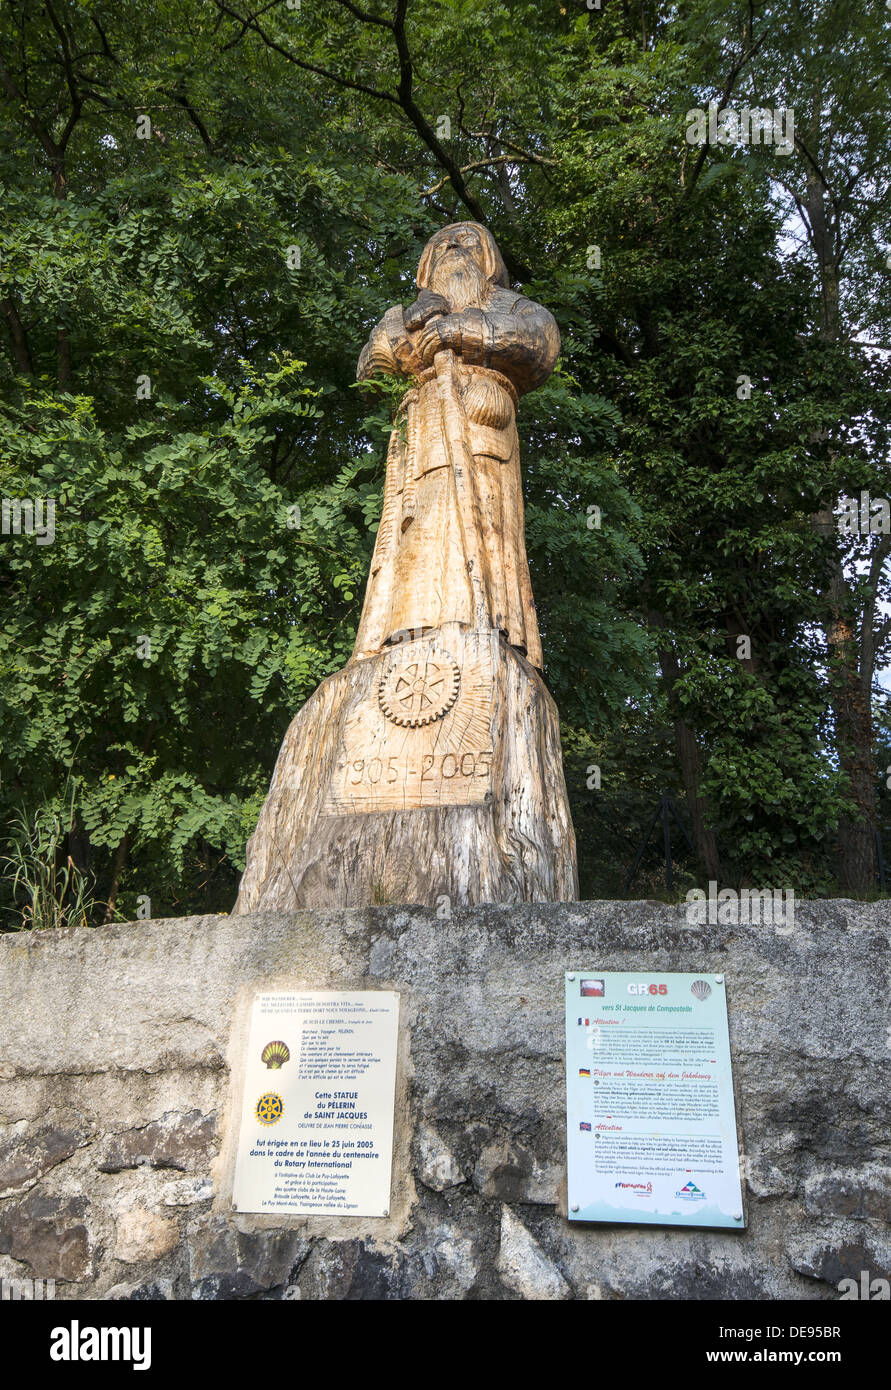 A large wooden sculpture of St James the pilgrim on the GR65 the Way of St James walking out of Le Puy-en-Velay in France - Stock Image